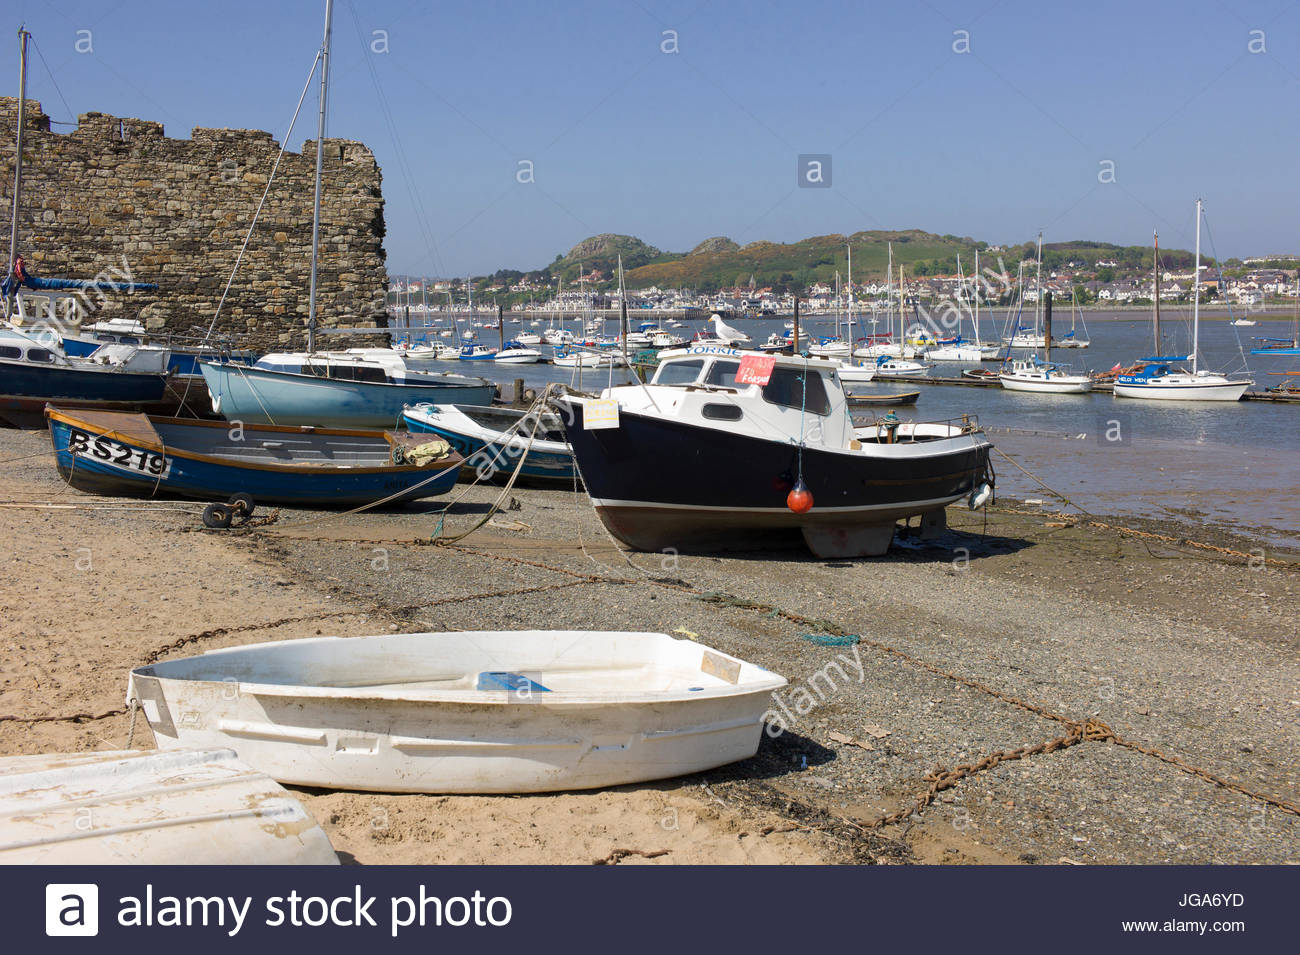 Motor boats and yachts moored in Conwy Harbour, north Wales, UK. One motor boat for sale. Stock Photo